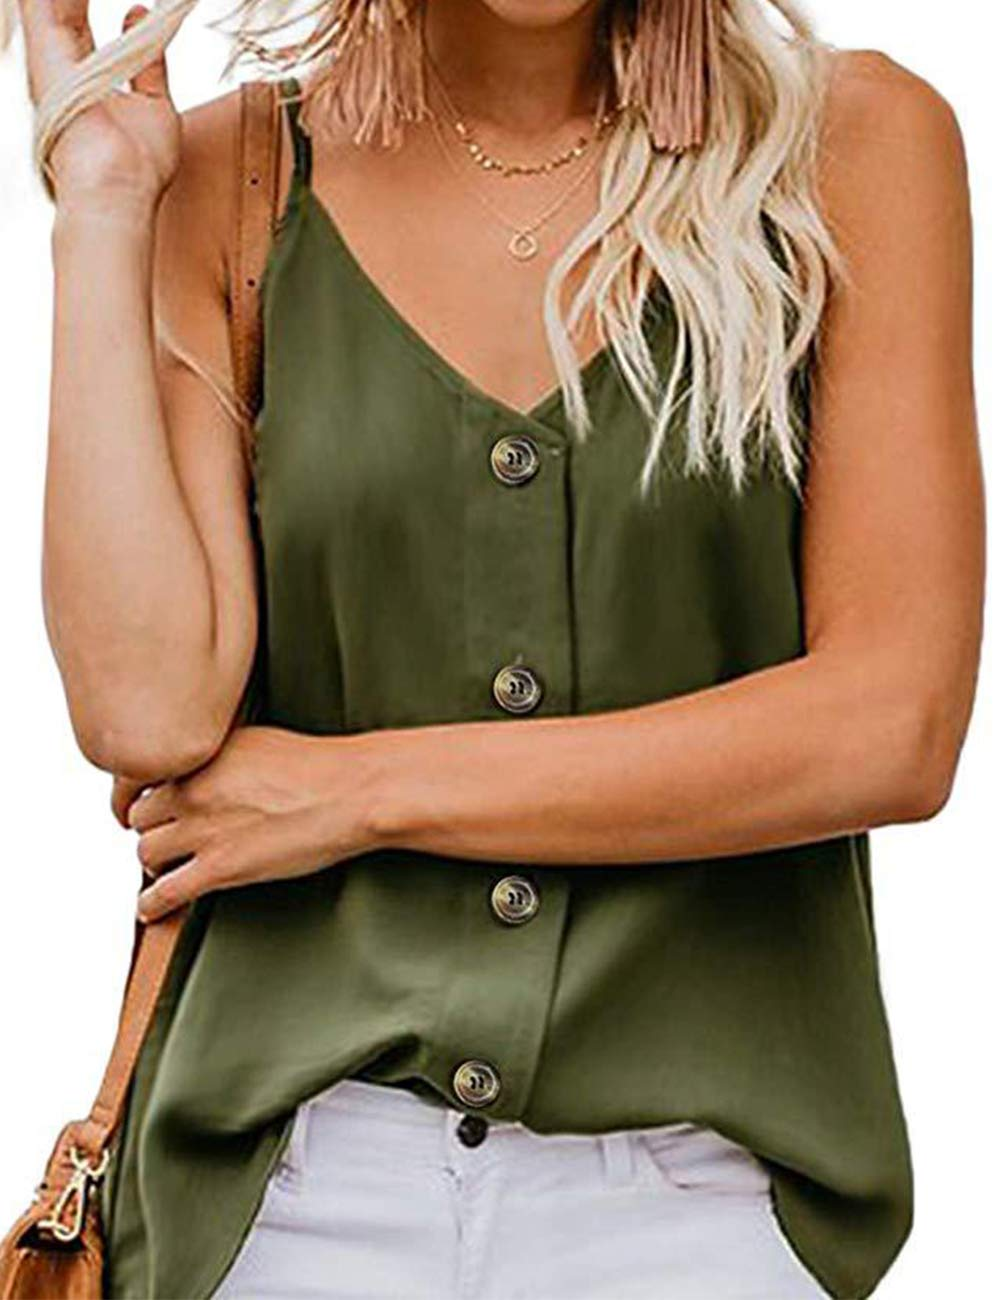 RSM&CHENG Women's Button Down V Neck Strappy Tank Tops Loose Casual Sleeveless Shirts Blouses(Arm Green,M